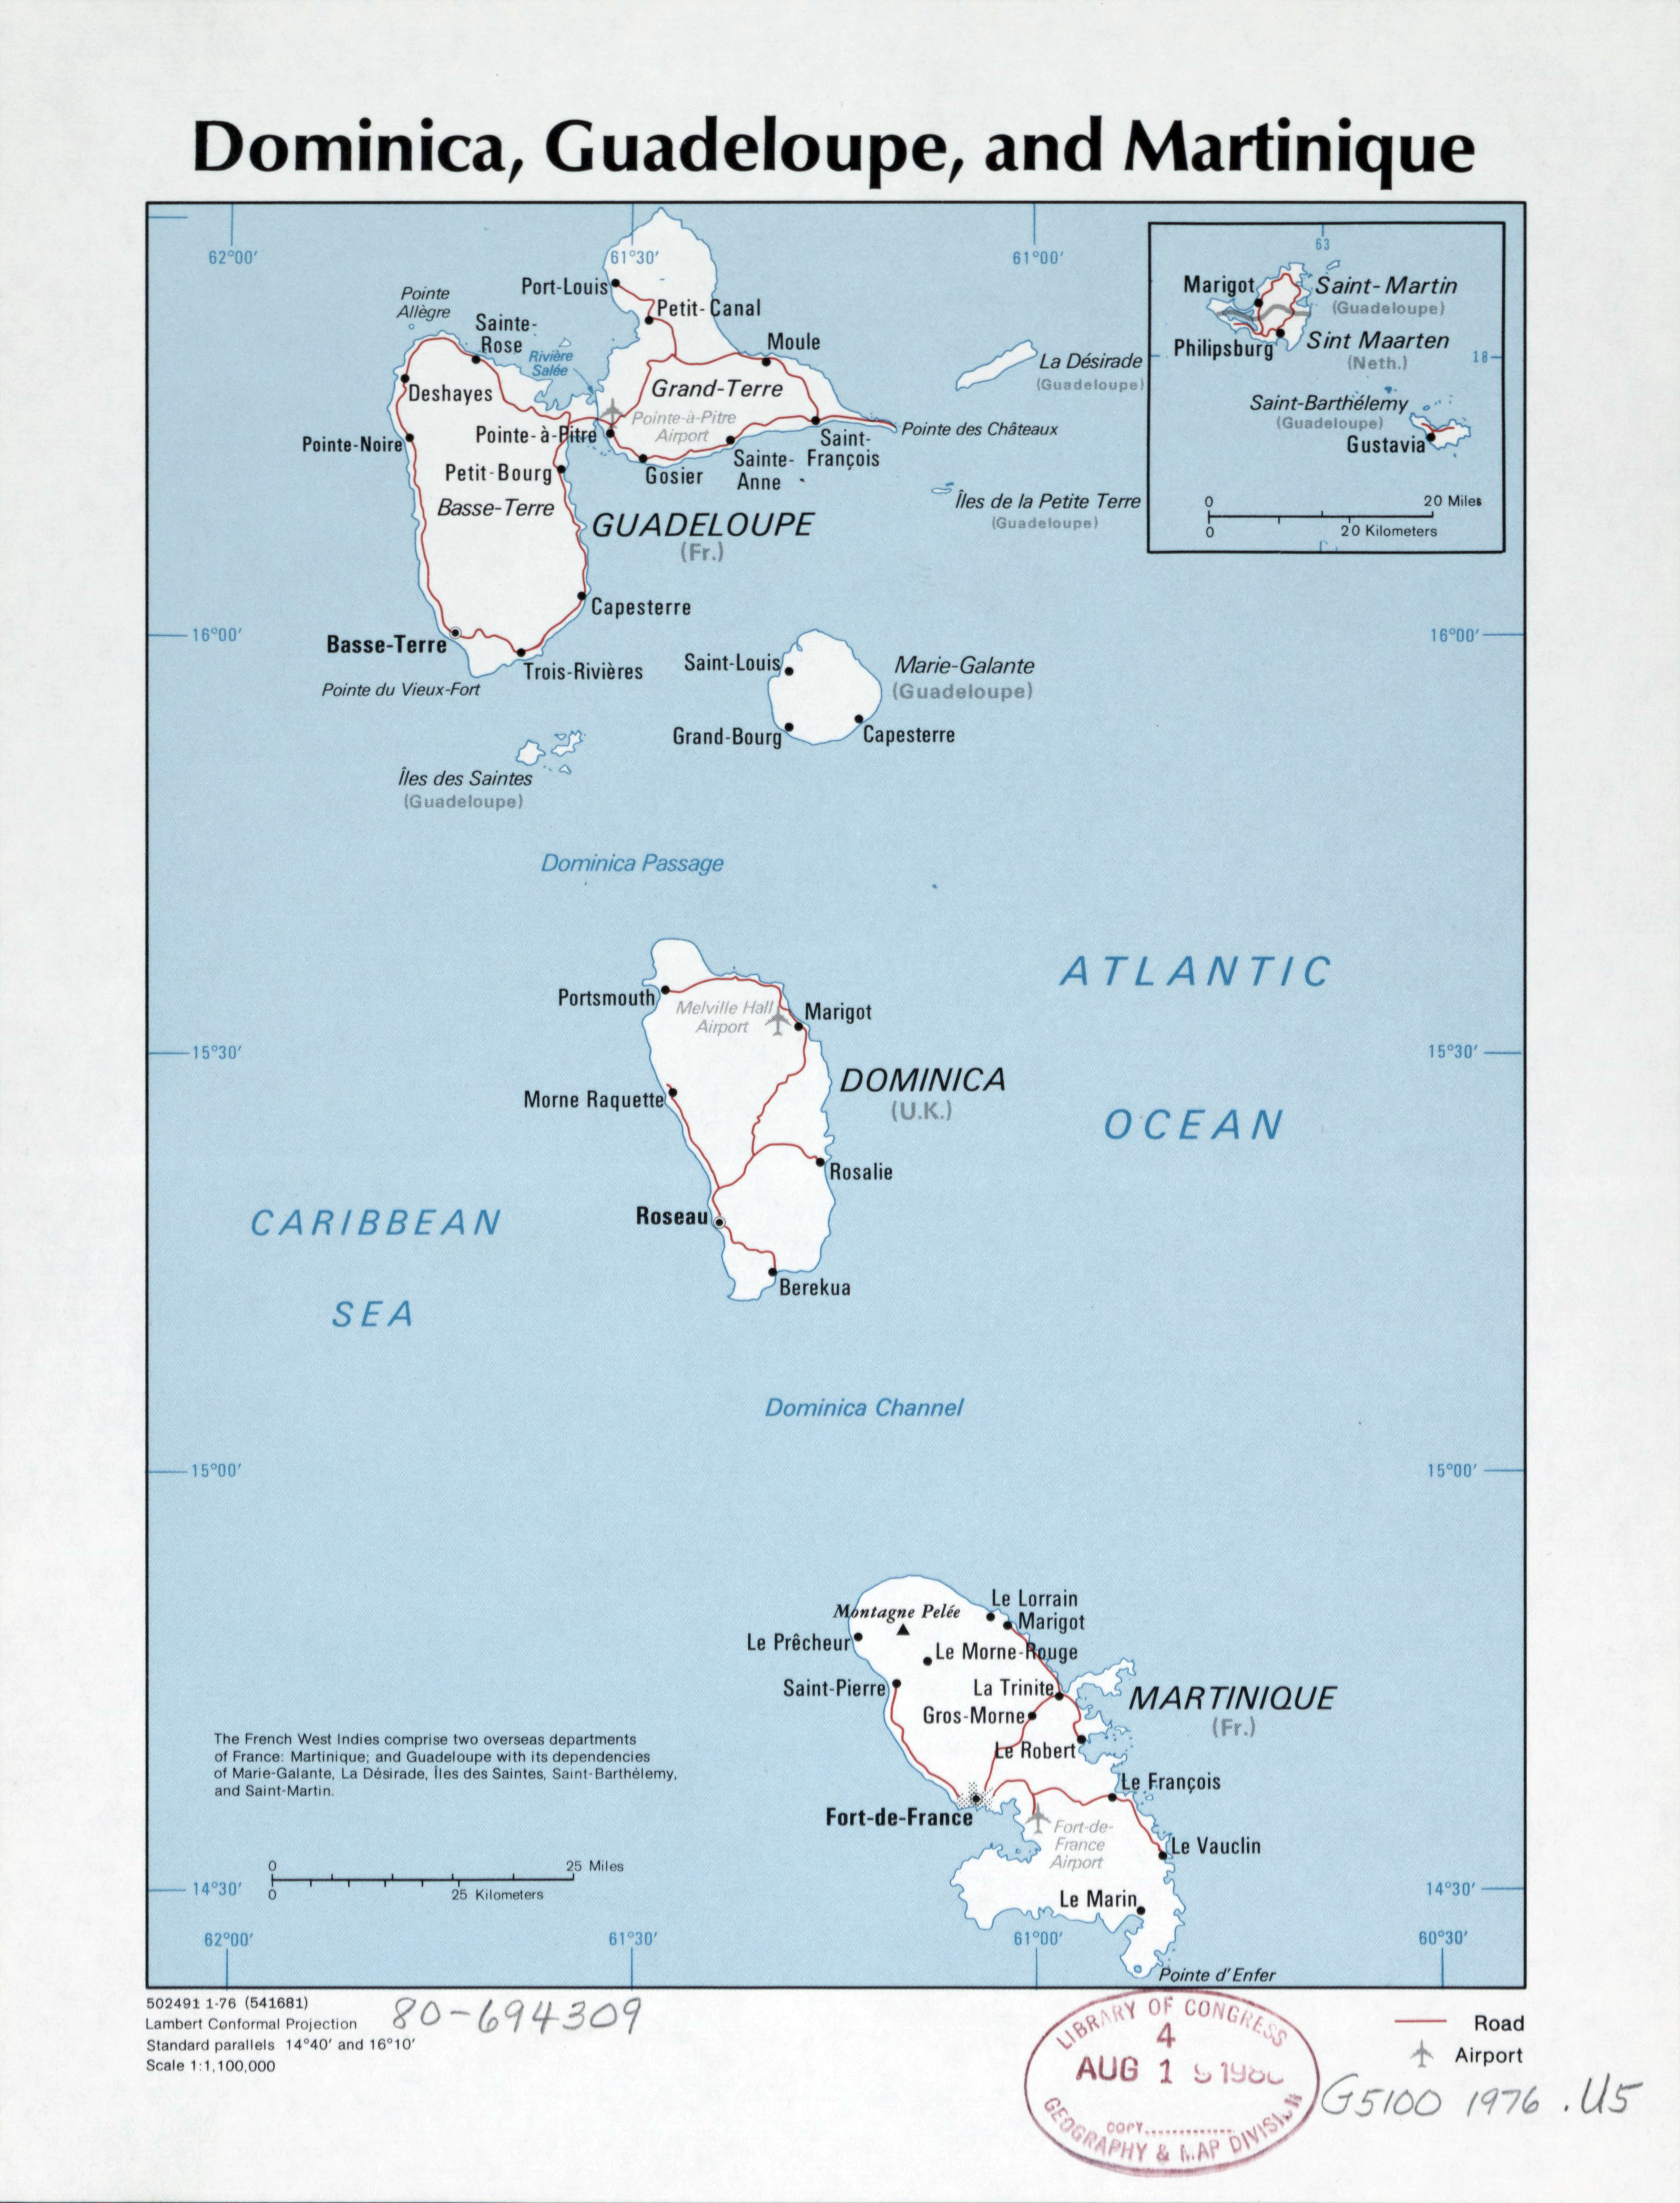 Large Detailed Political Map Of Dominica Guadeloupe And - Dominica political map